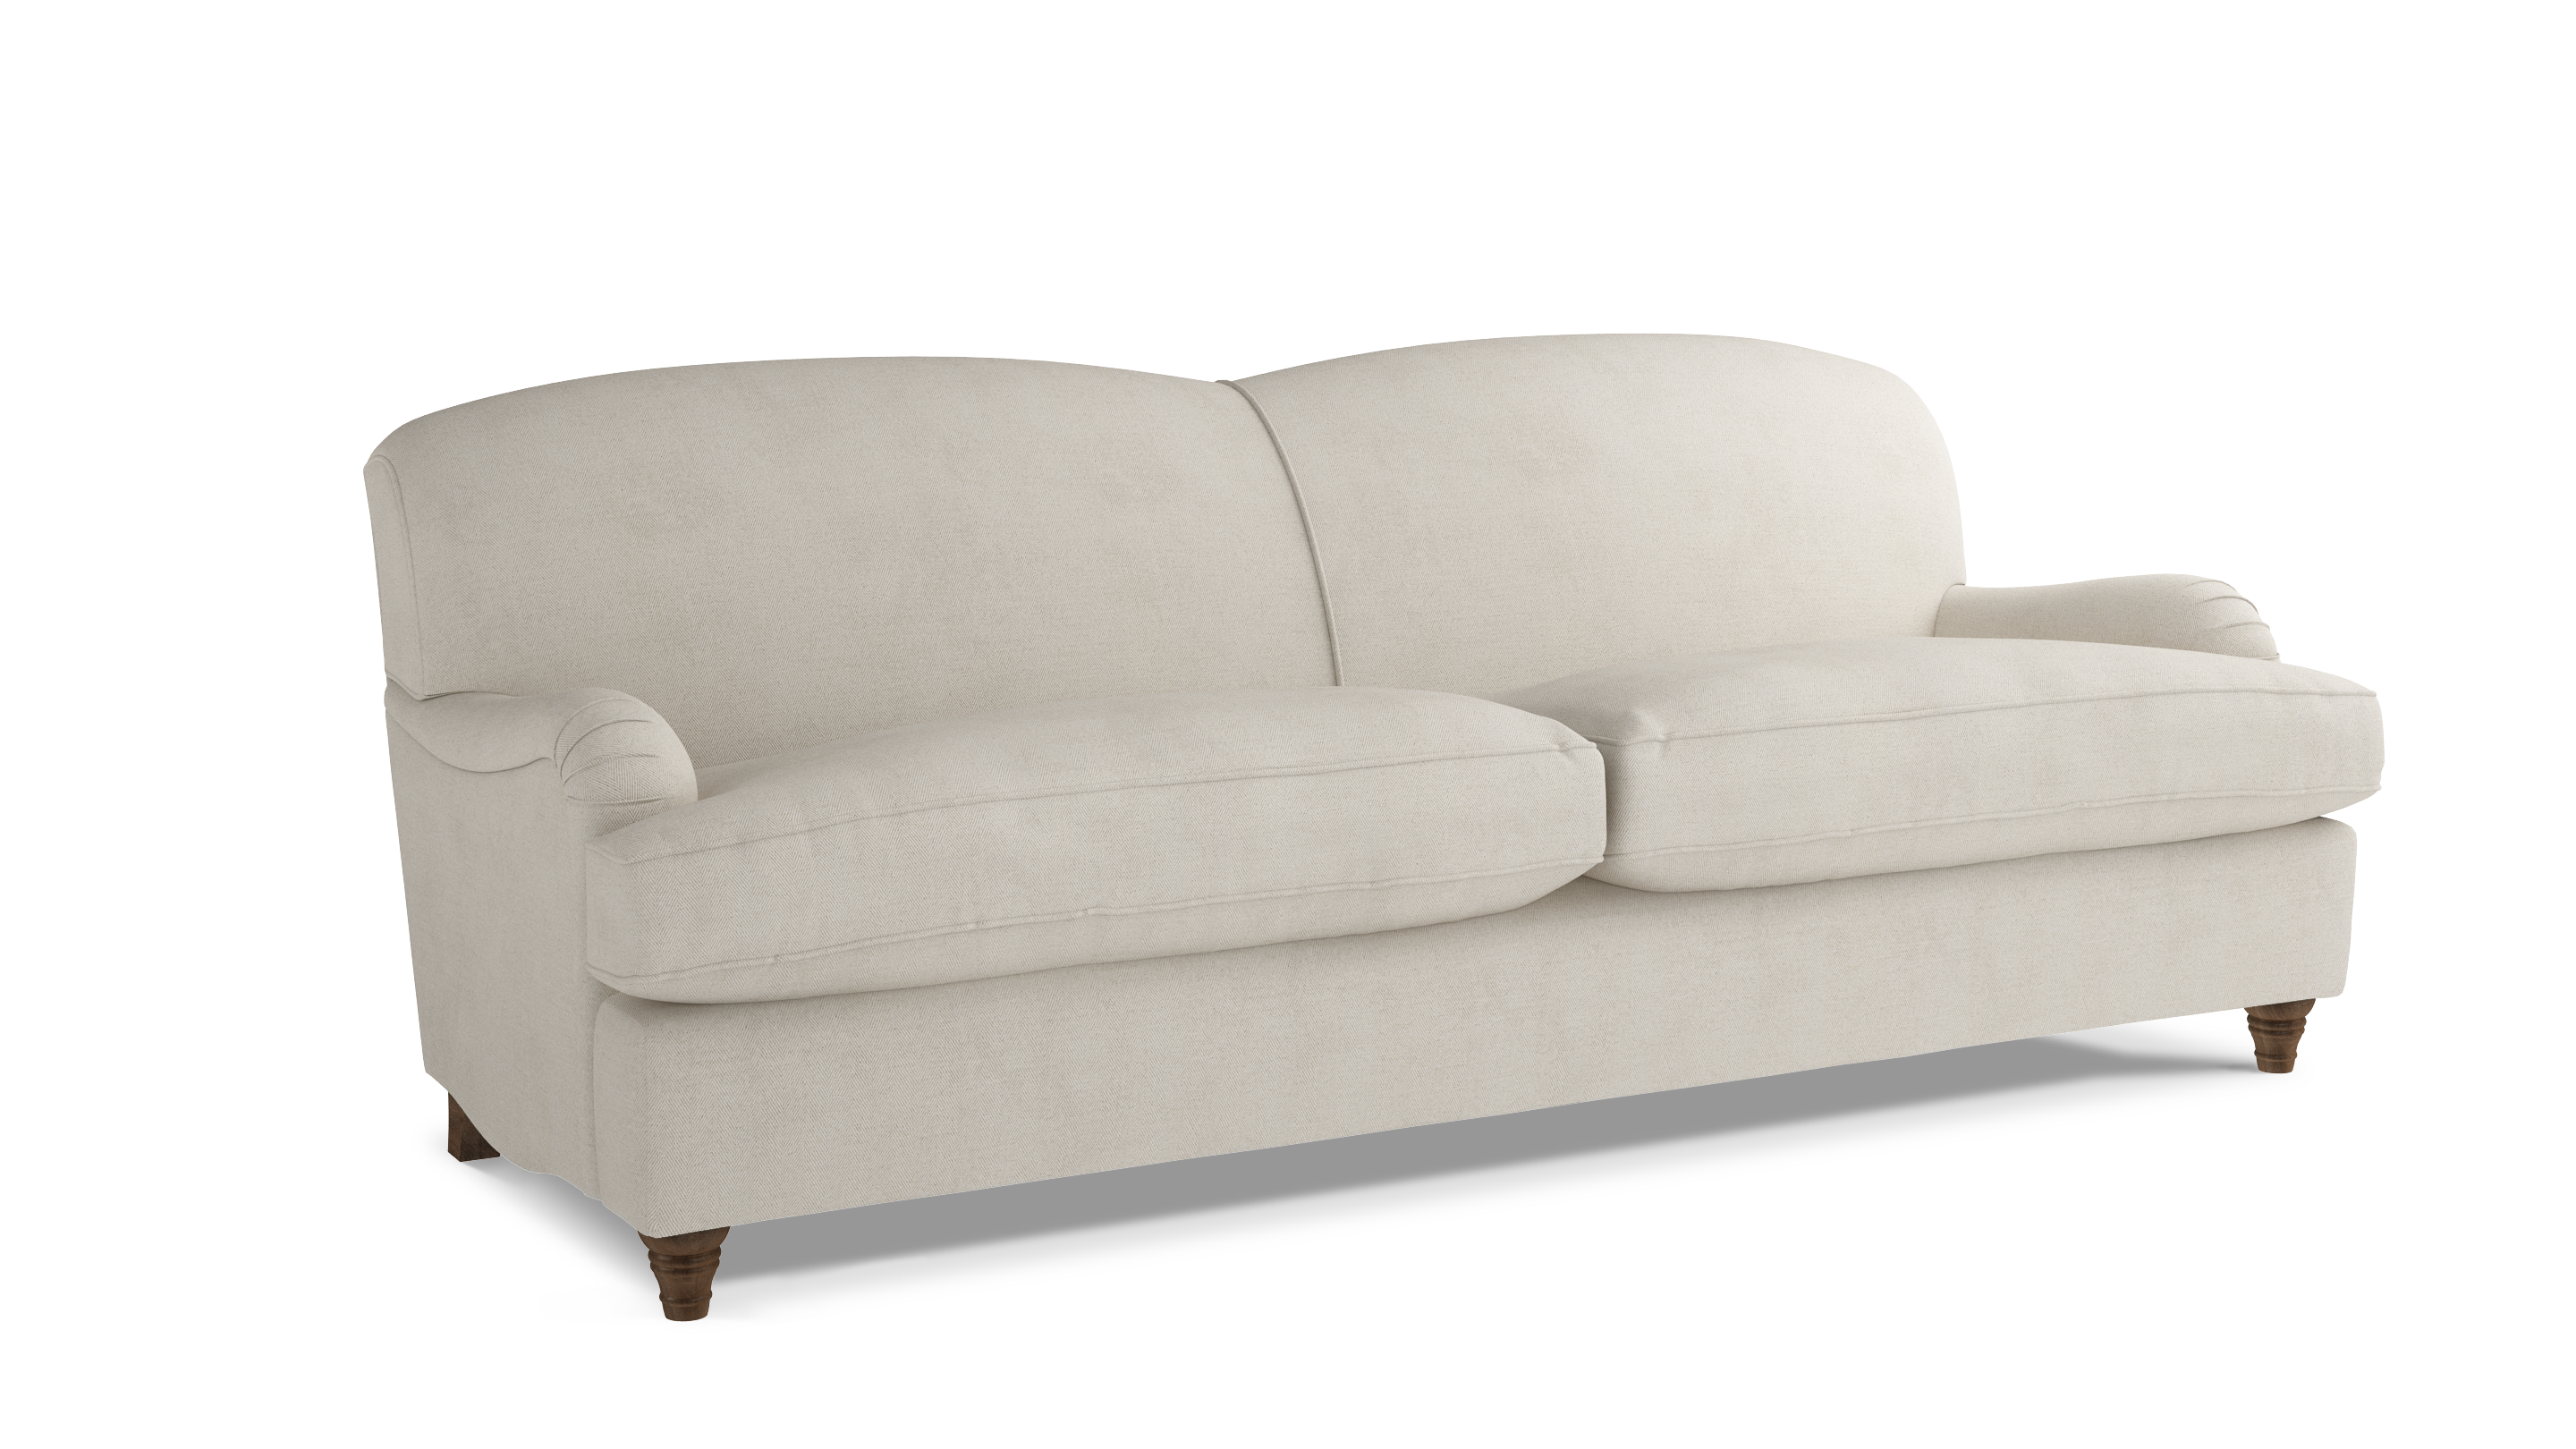 Long Cushions For Sofas